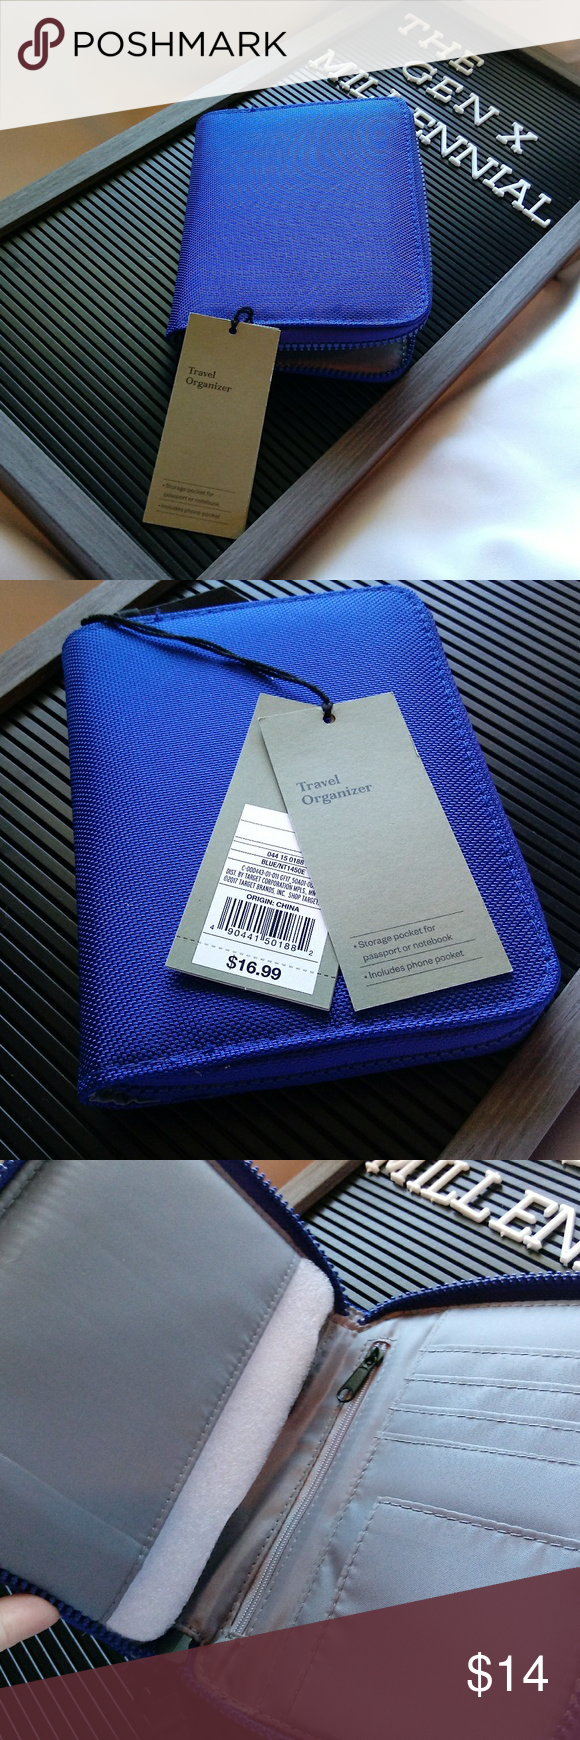 Blue Travel Organizer Wallet with Phone Pocket This